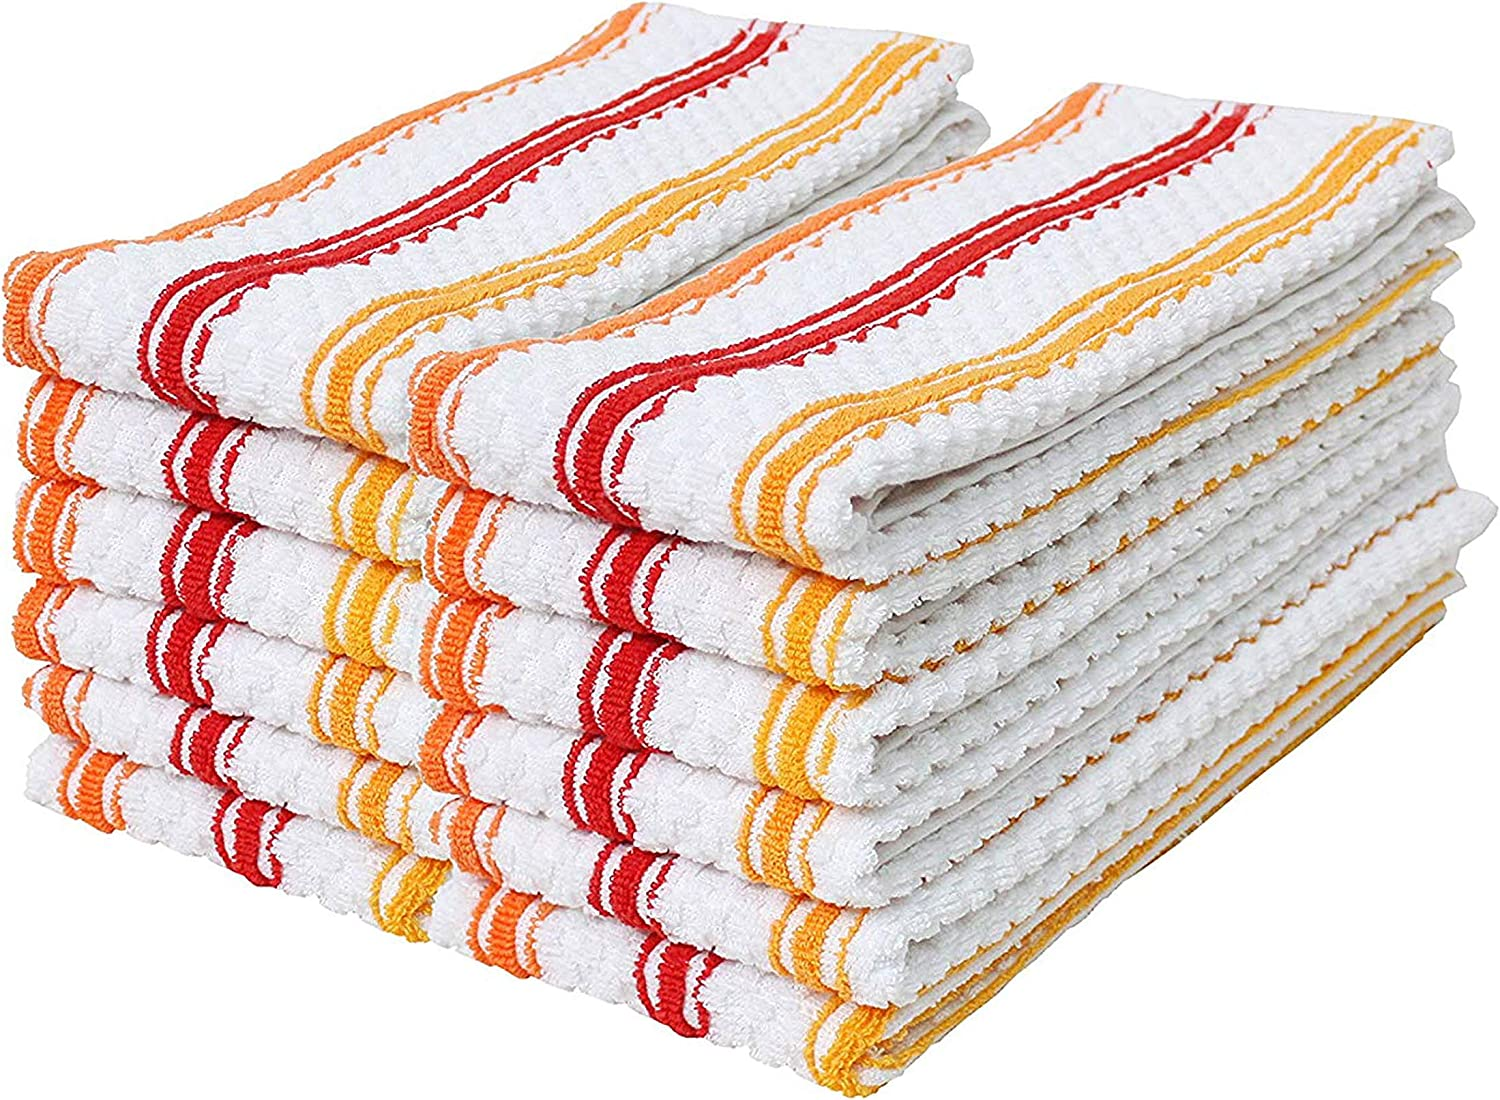 60 new white bleach safe cleaning kitchen dish towels large 15x25 absorbent